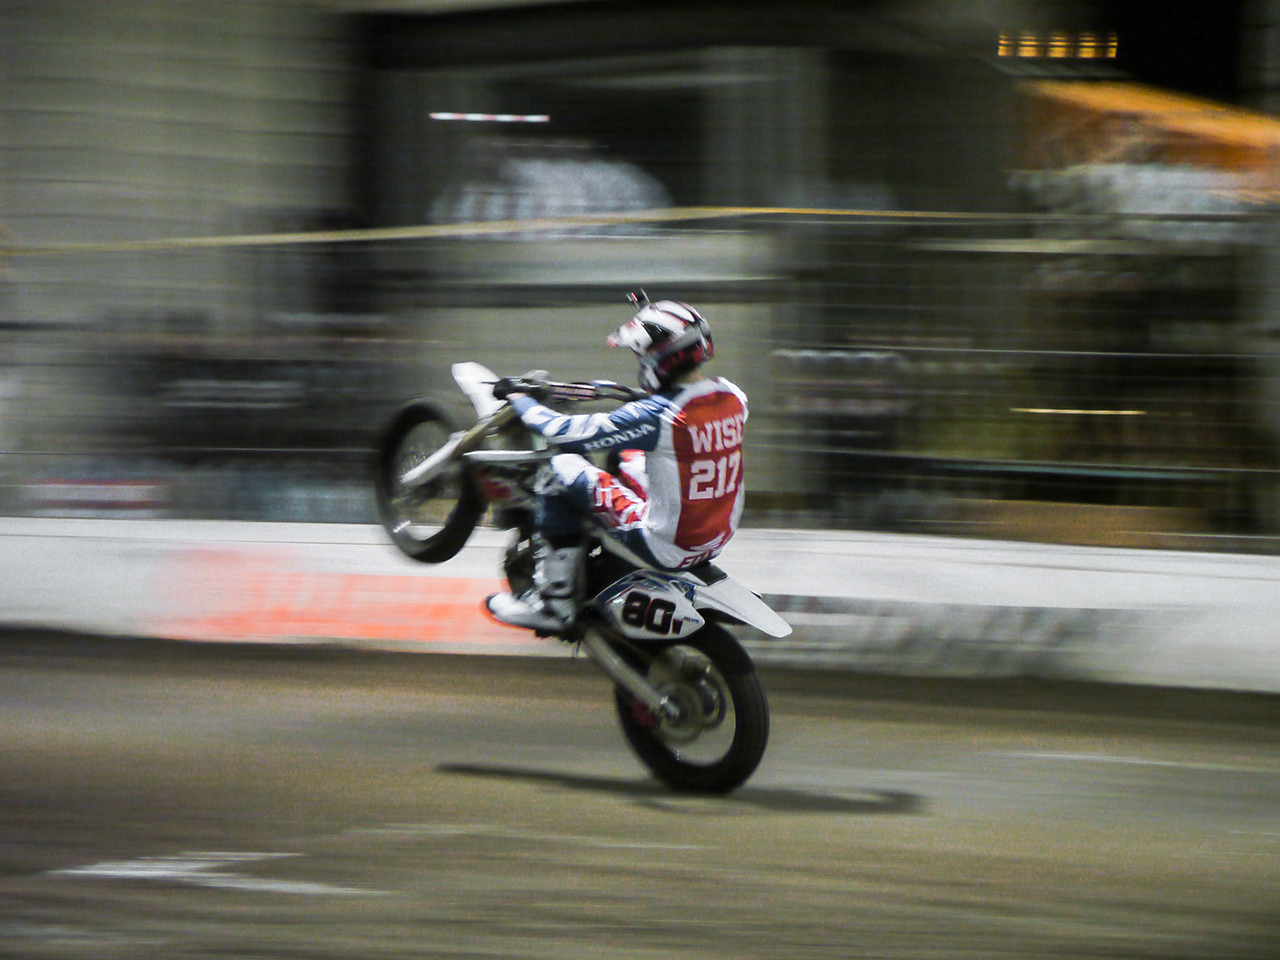 At the One Pro it was wheelie time.